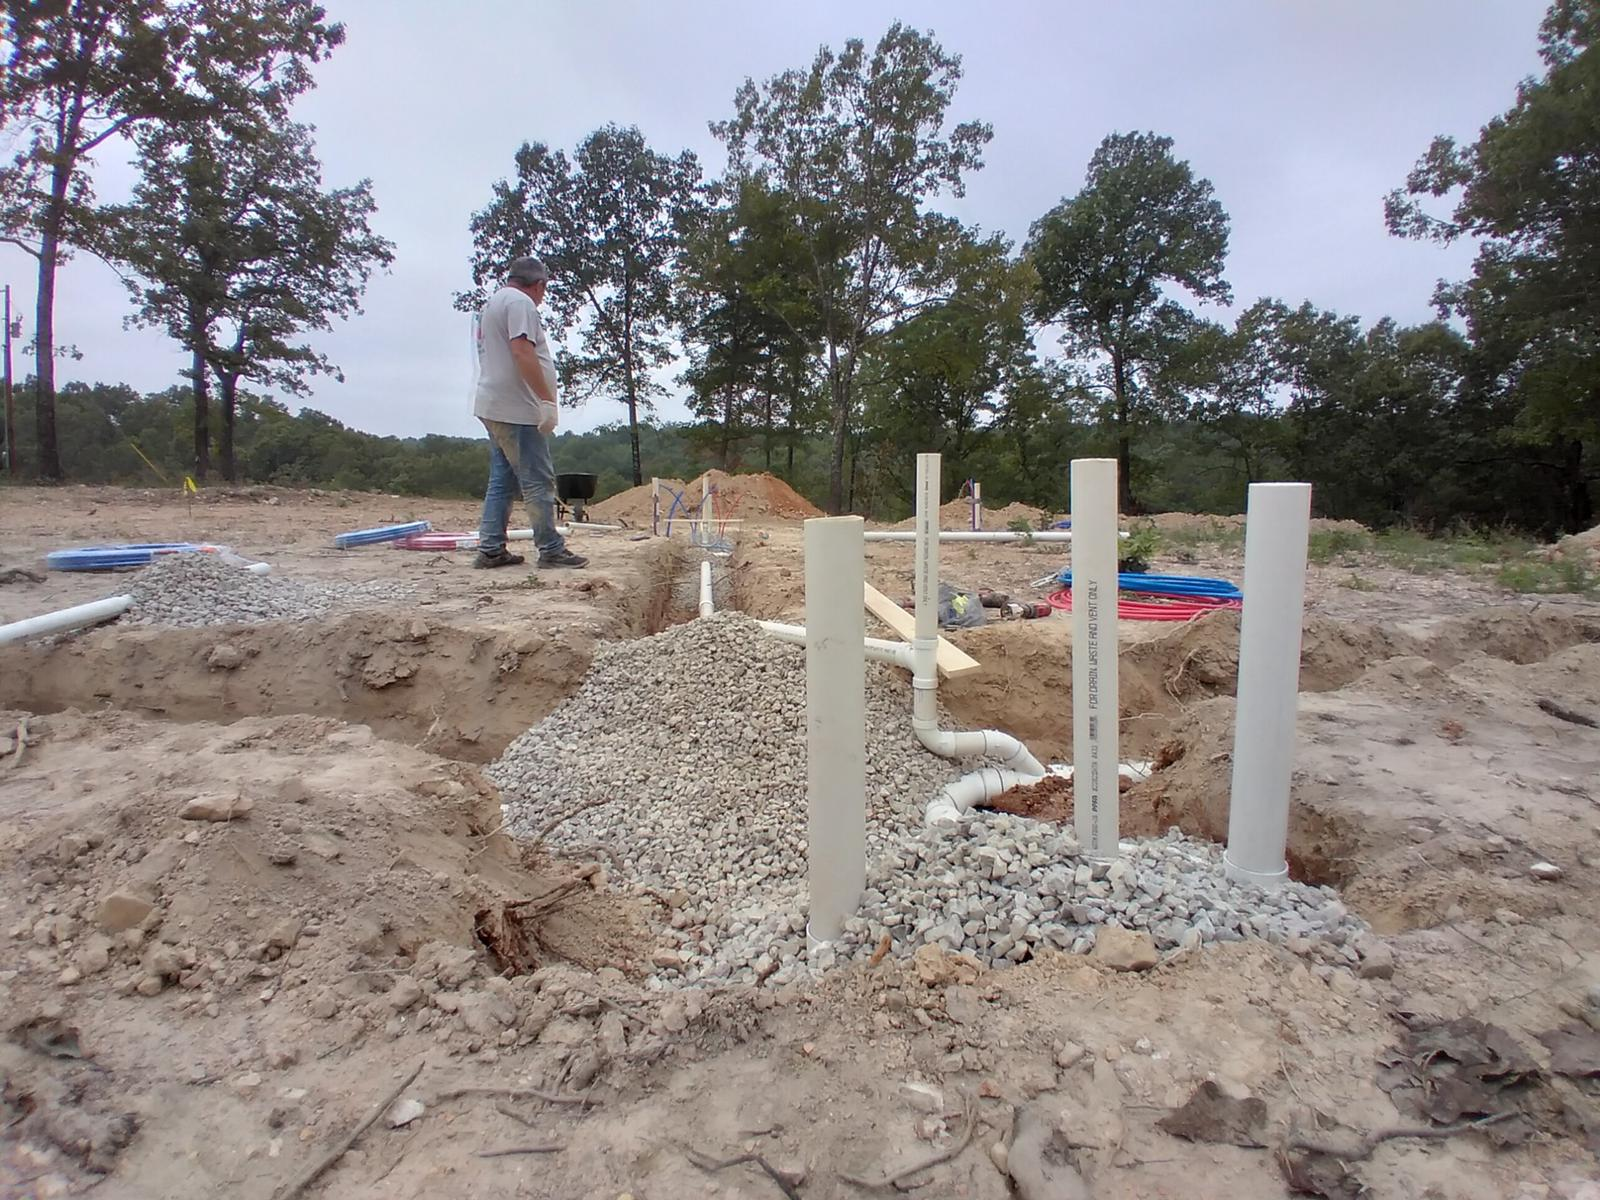 Laying pipe in the ground before a cement pad is poured for a new home.